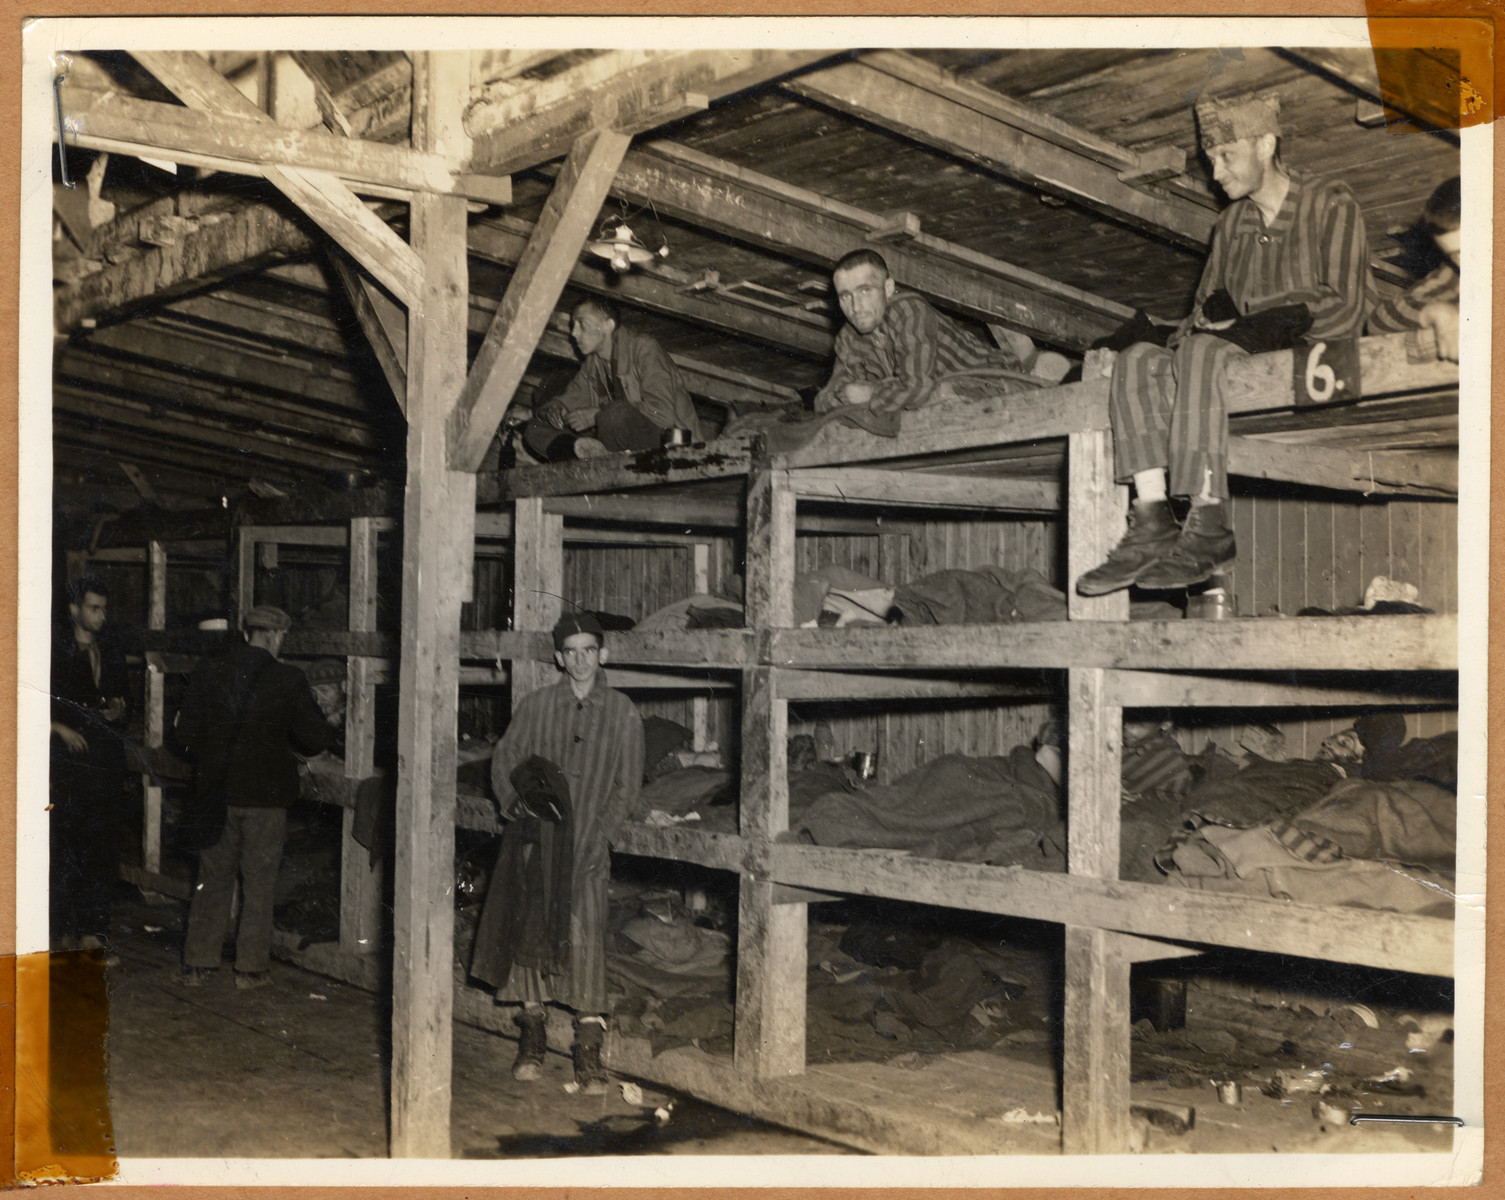 """Survivors sit in multi-tiered bunks in a barracks in the newly liberated Buchenwald concentration camp.  The lender's handwritten caption reads, """"1,500 persons slept in this building.  5 or 6 persons slept in each sections without cover--no heat, and on solid wood.  They left at 6 AM - to return at 7 PM.  At least 50 died every night.  There were special barracks for Jews and those too weak to work they were sent there to die."""""""